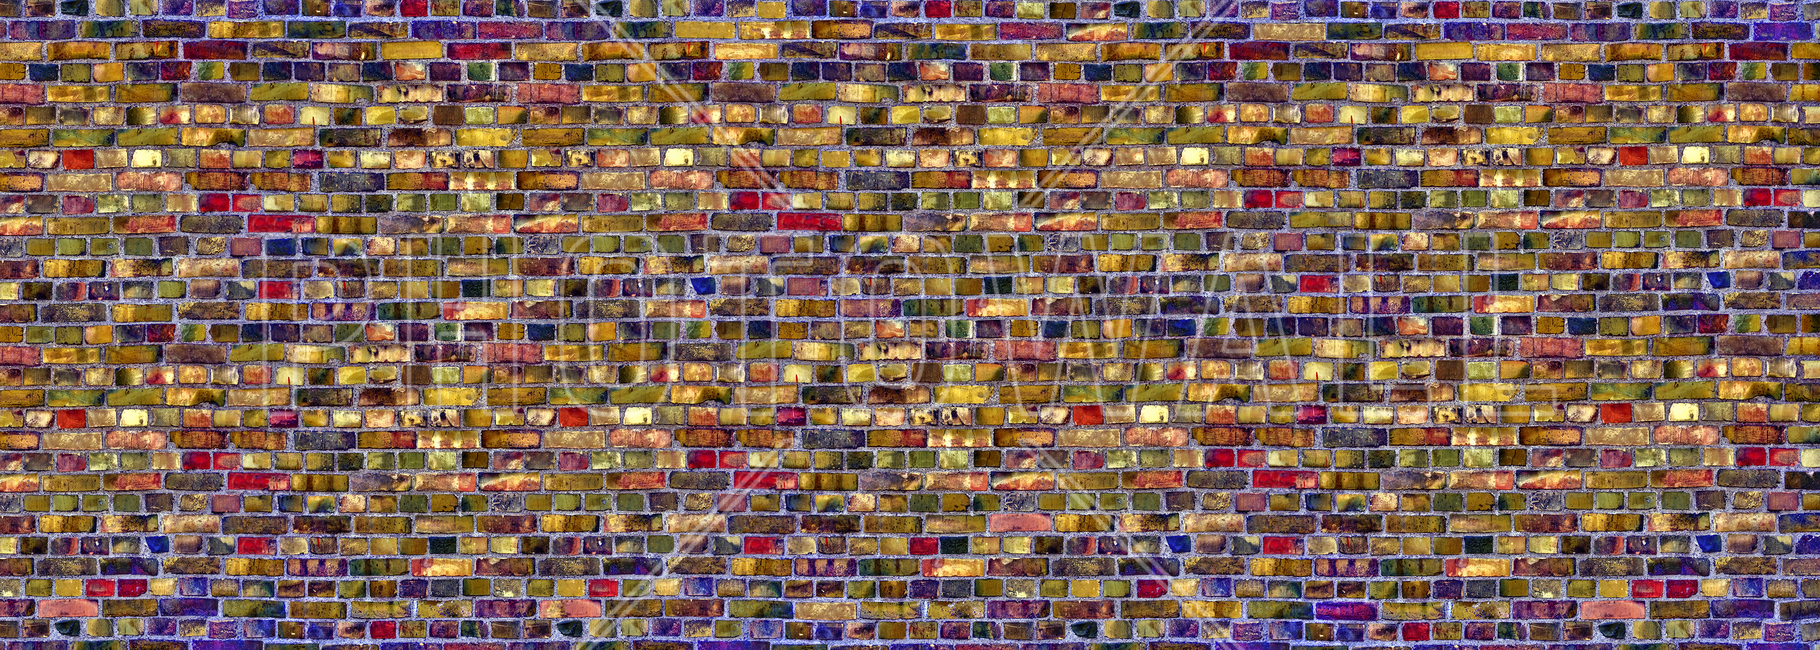 Colorful Brick Wall Fototapeter & Tapeter 100 x 100 cm